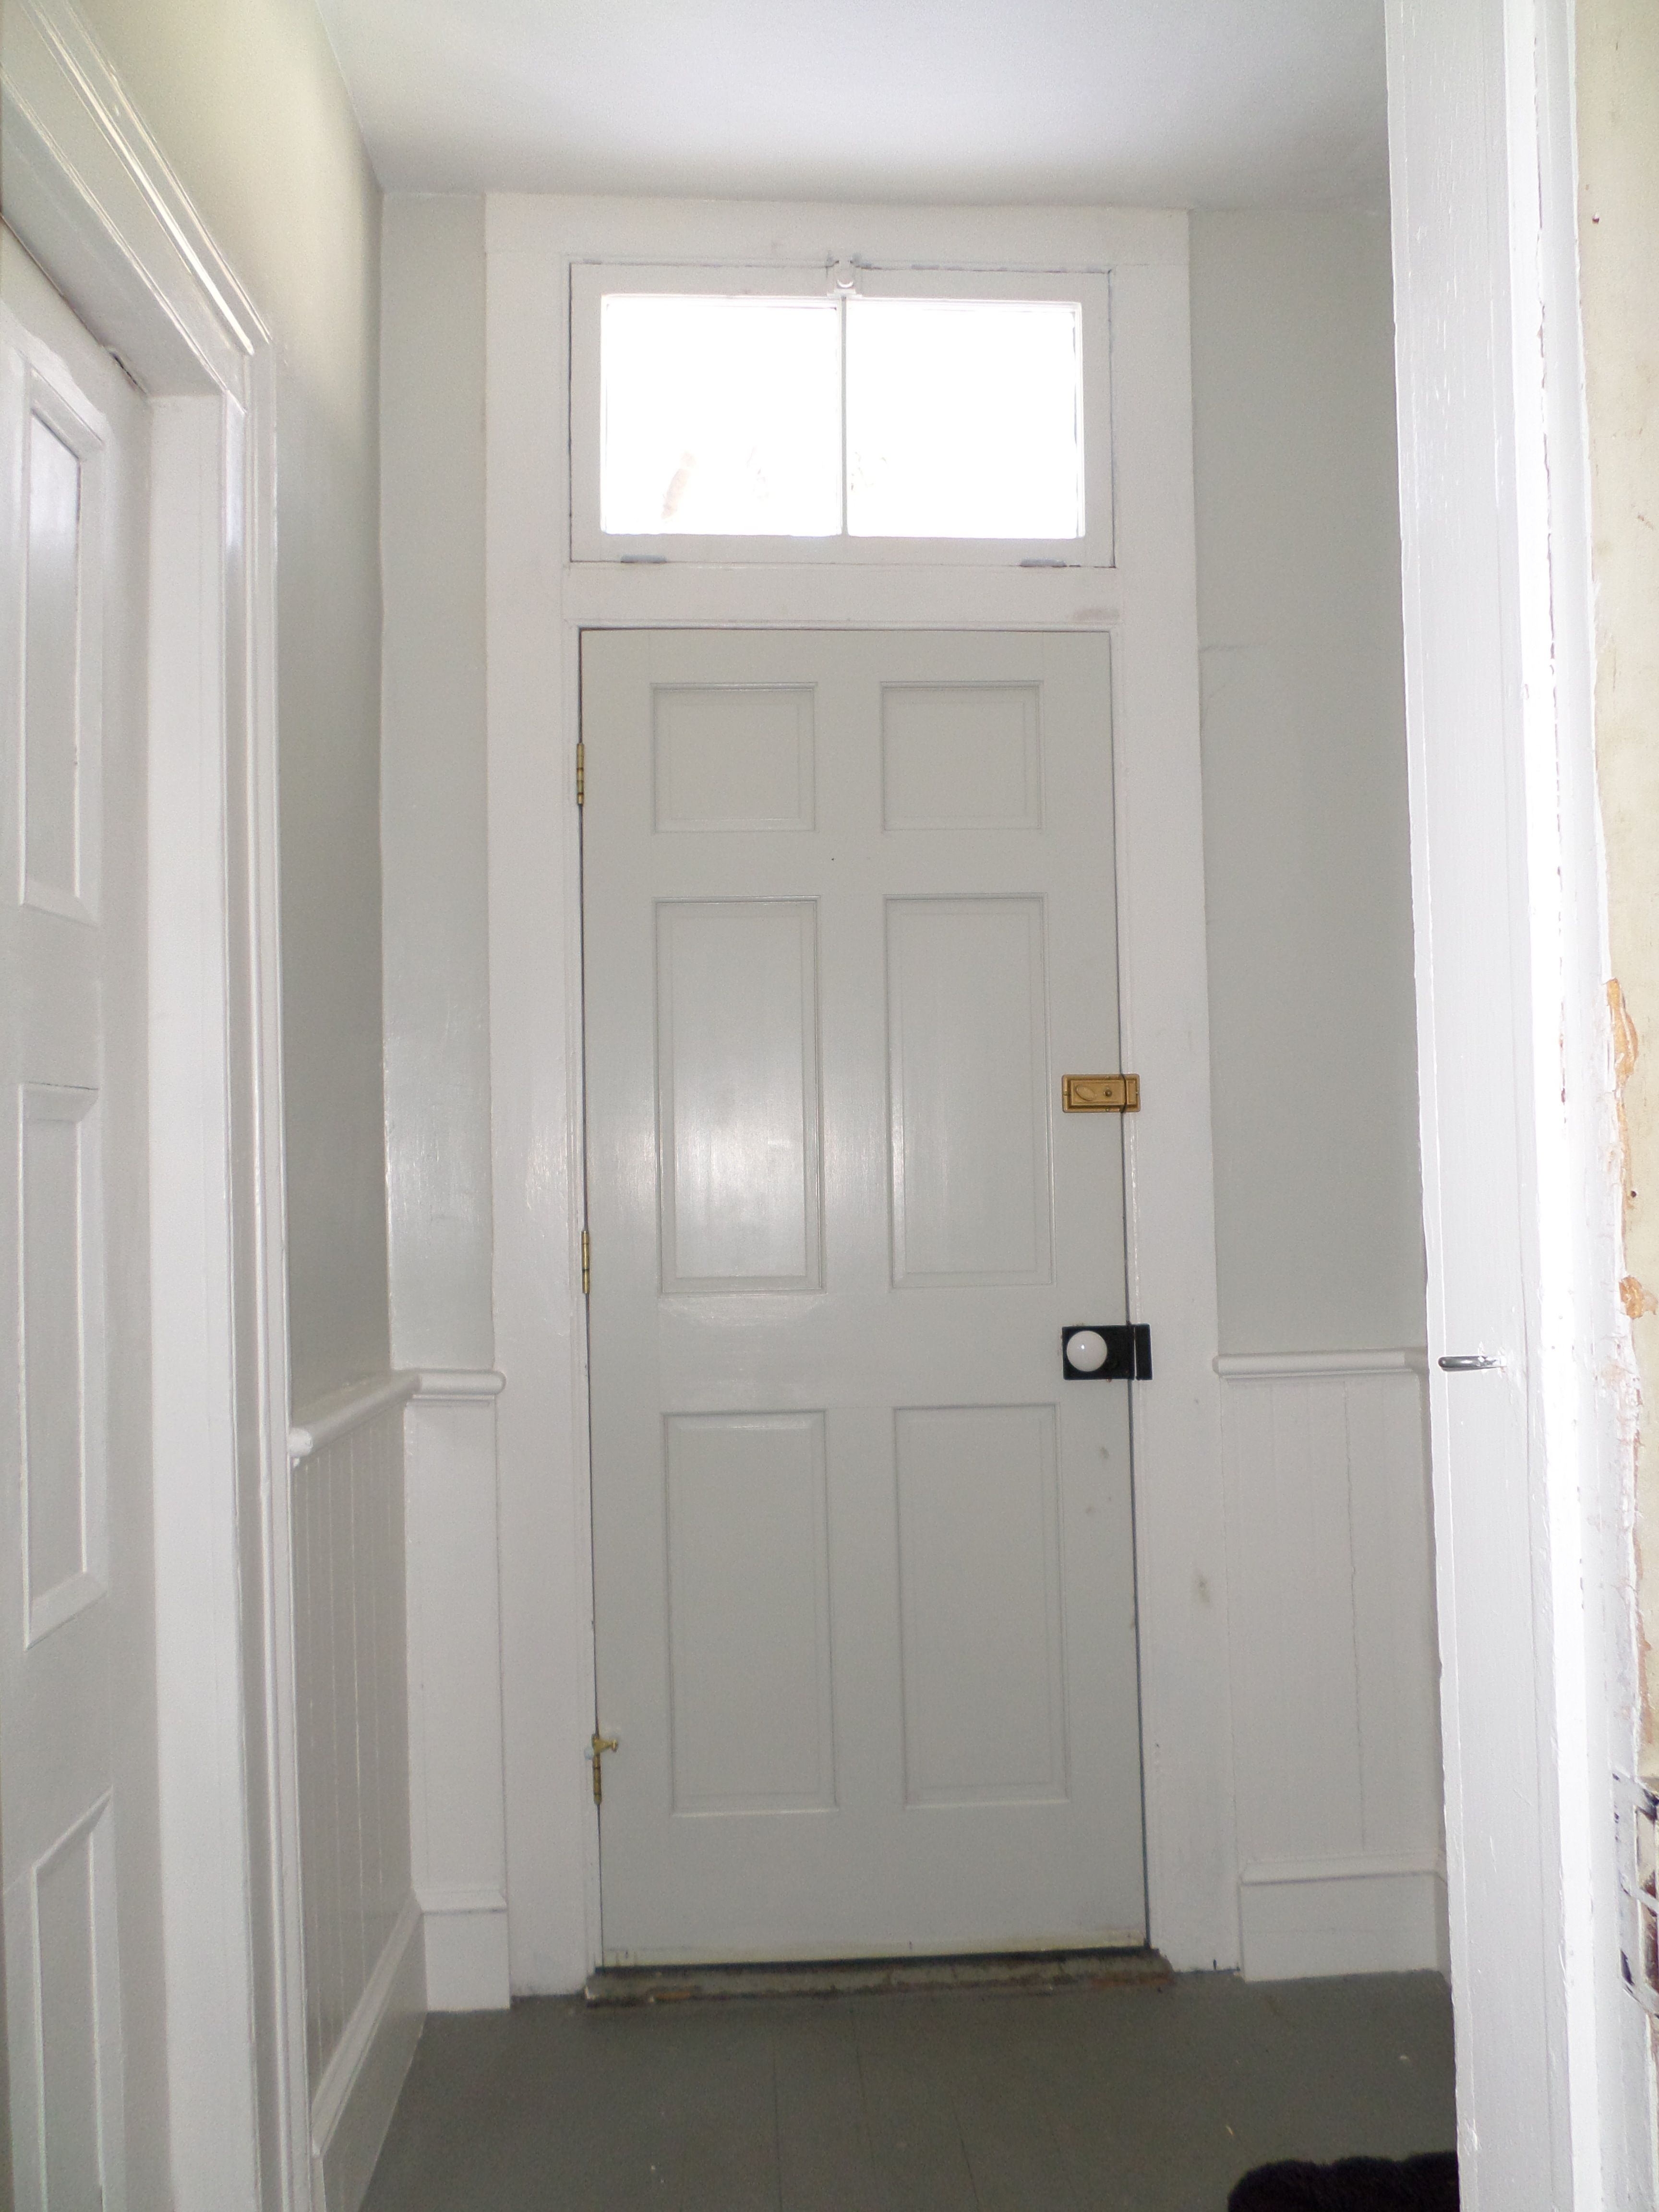 Back door and walls painted benjamin moore moonshine benjamin moore dove white on trim and wainscot rim lock in black with white porcelain knob from house